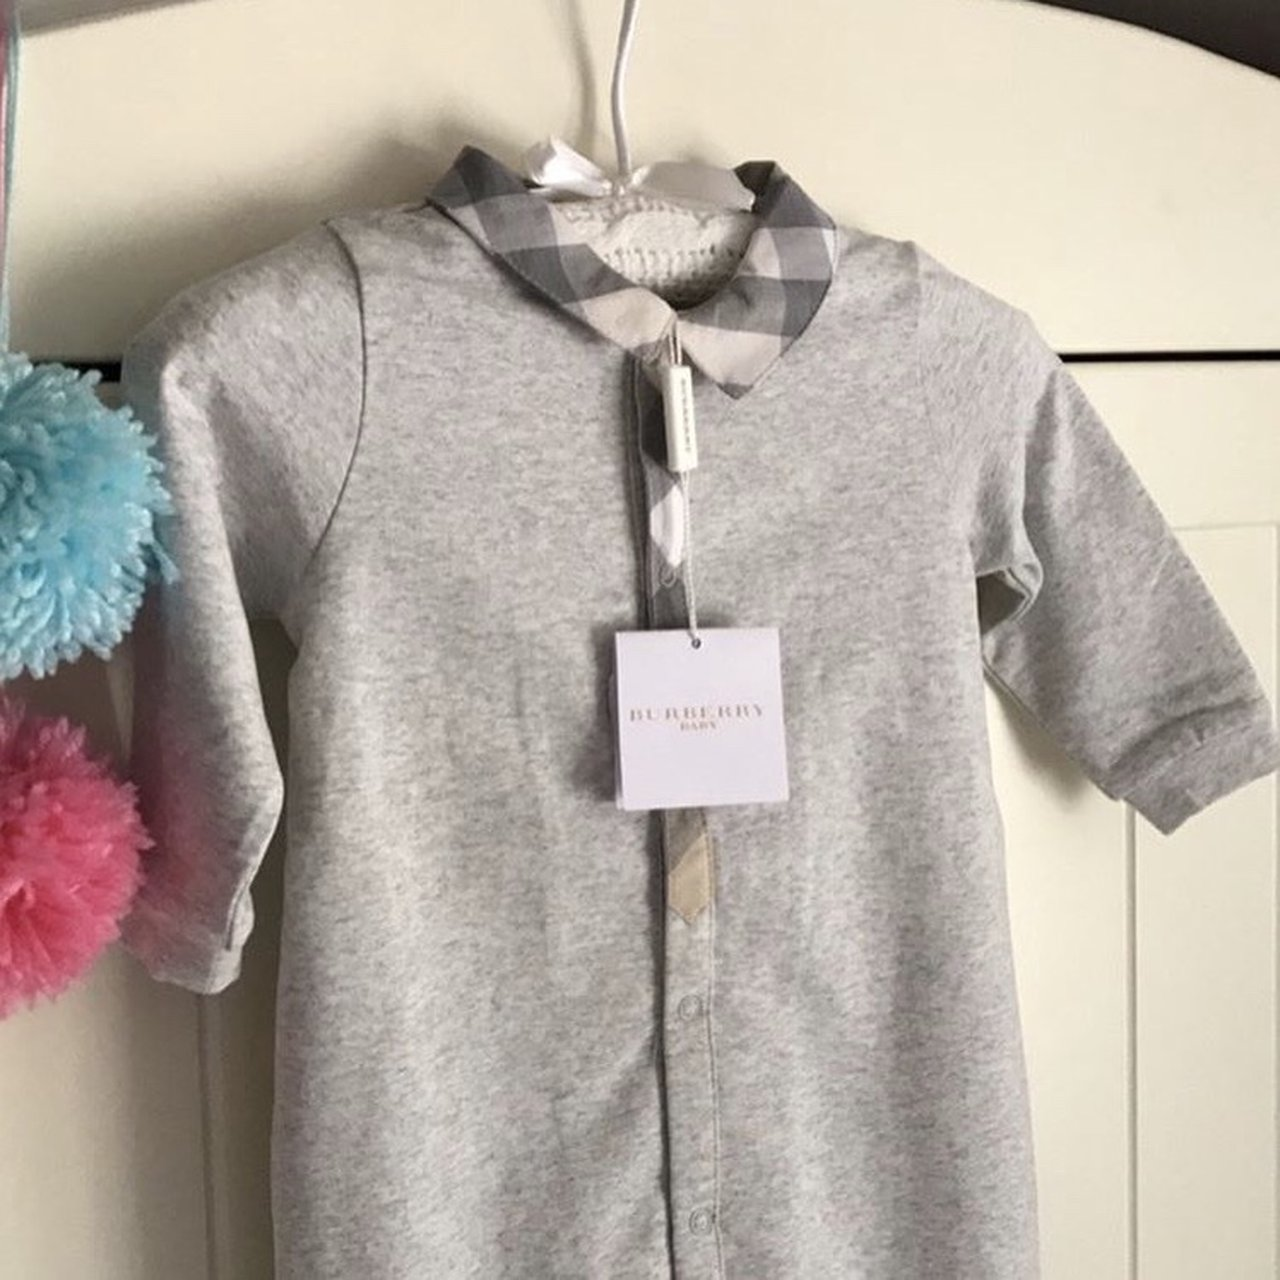 Burberry Baby grow size 6 months RRP £90  burberry - Depop 7c5bb57faba4